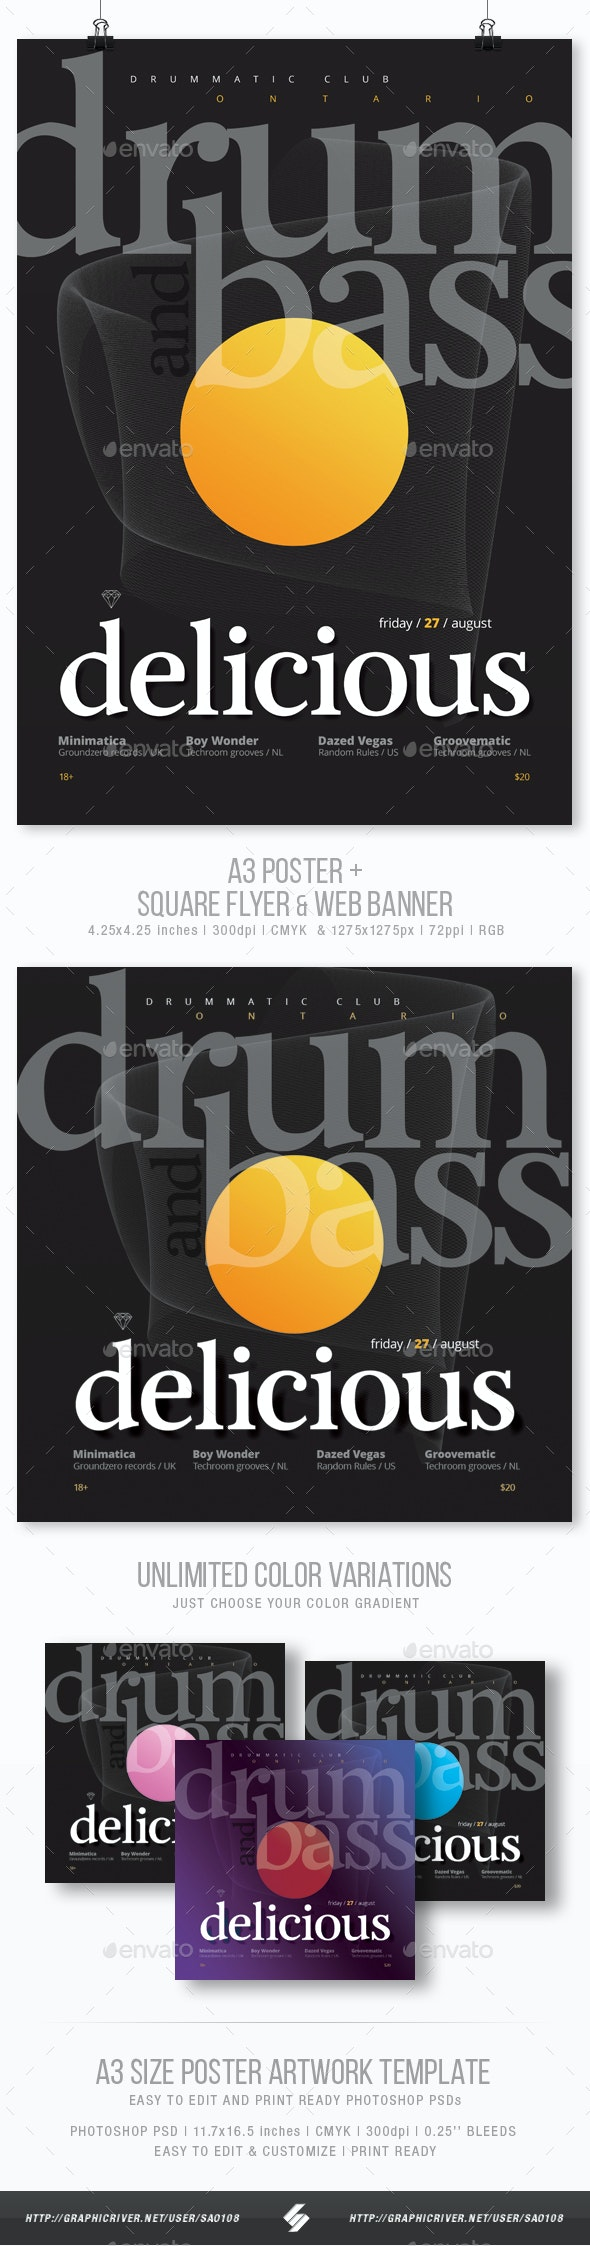 Drum and Bass Delicious - Party Flyer / Poster Template A3 - Clubs & Parties Events